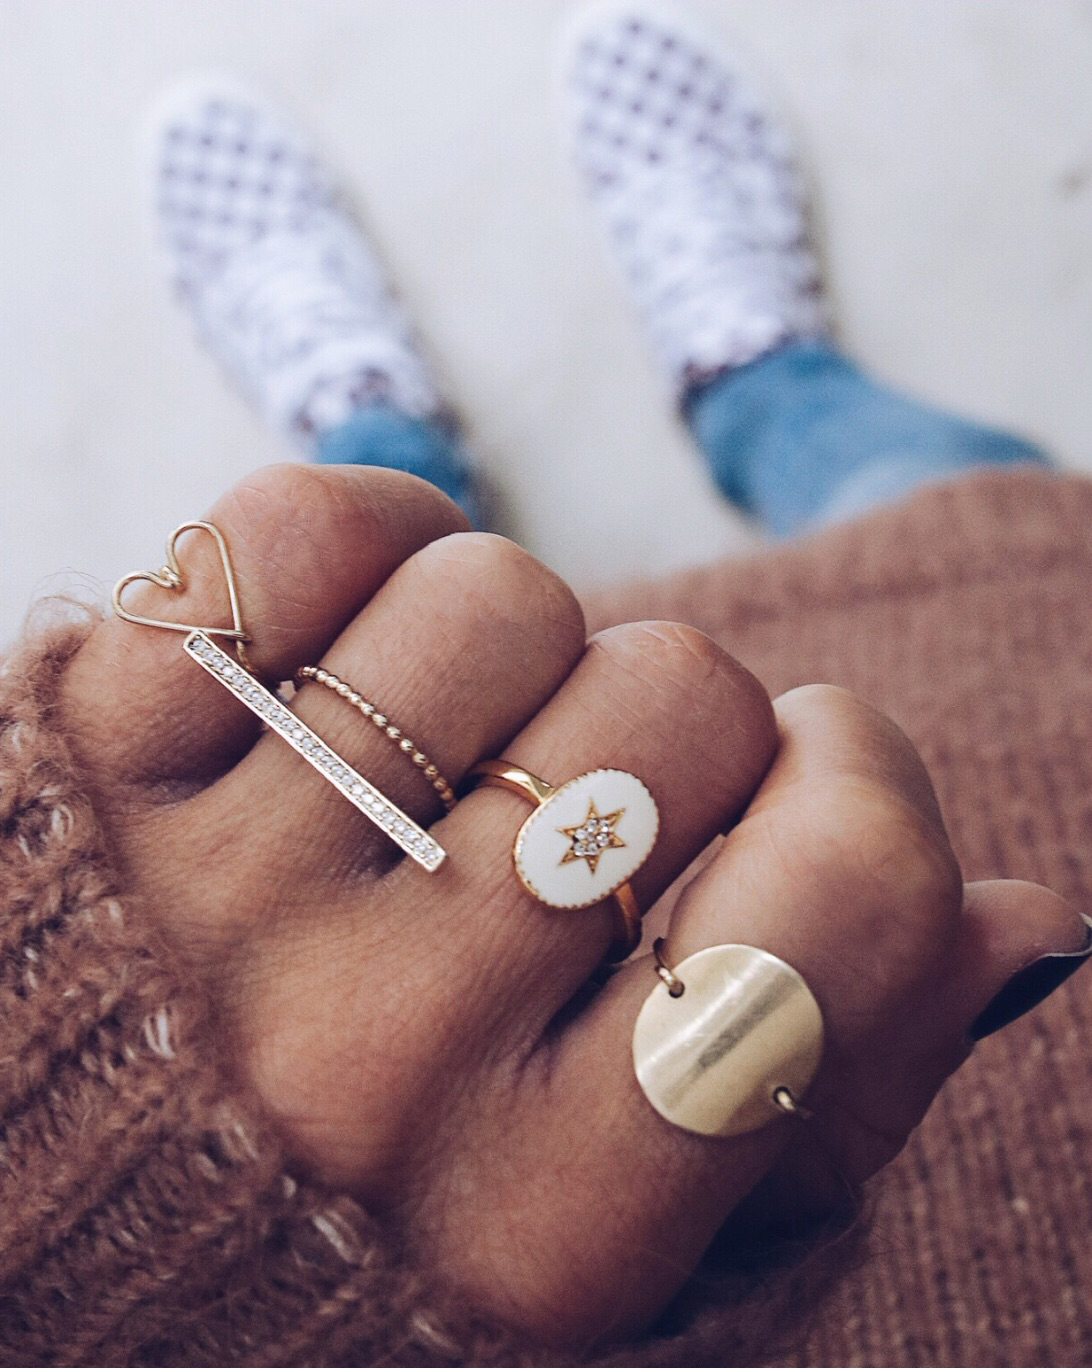 gold rings set, rings layering, jewelry addict, bijoux lover